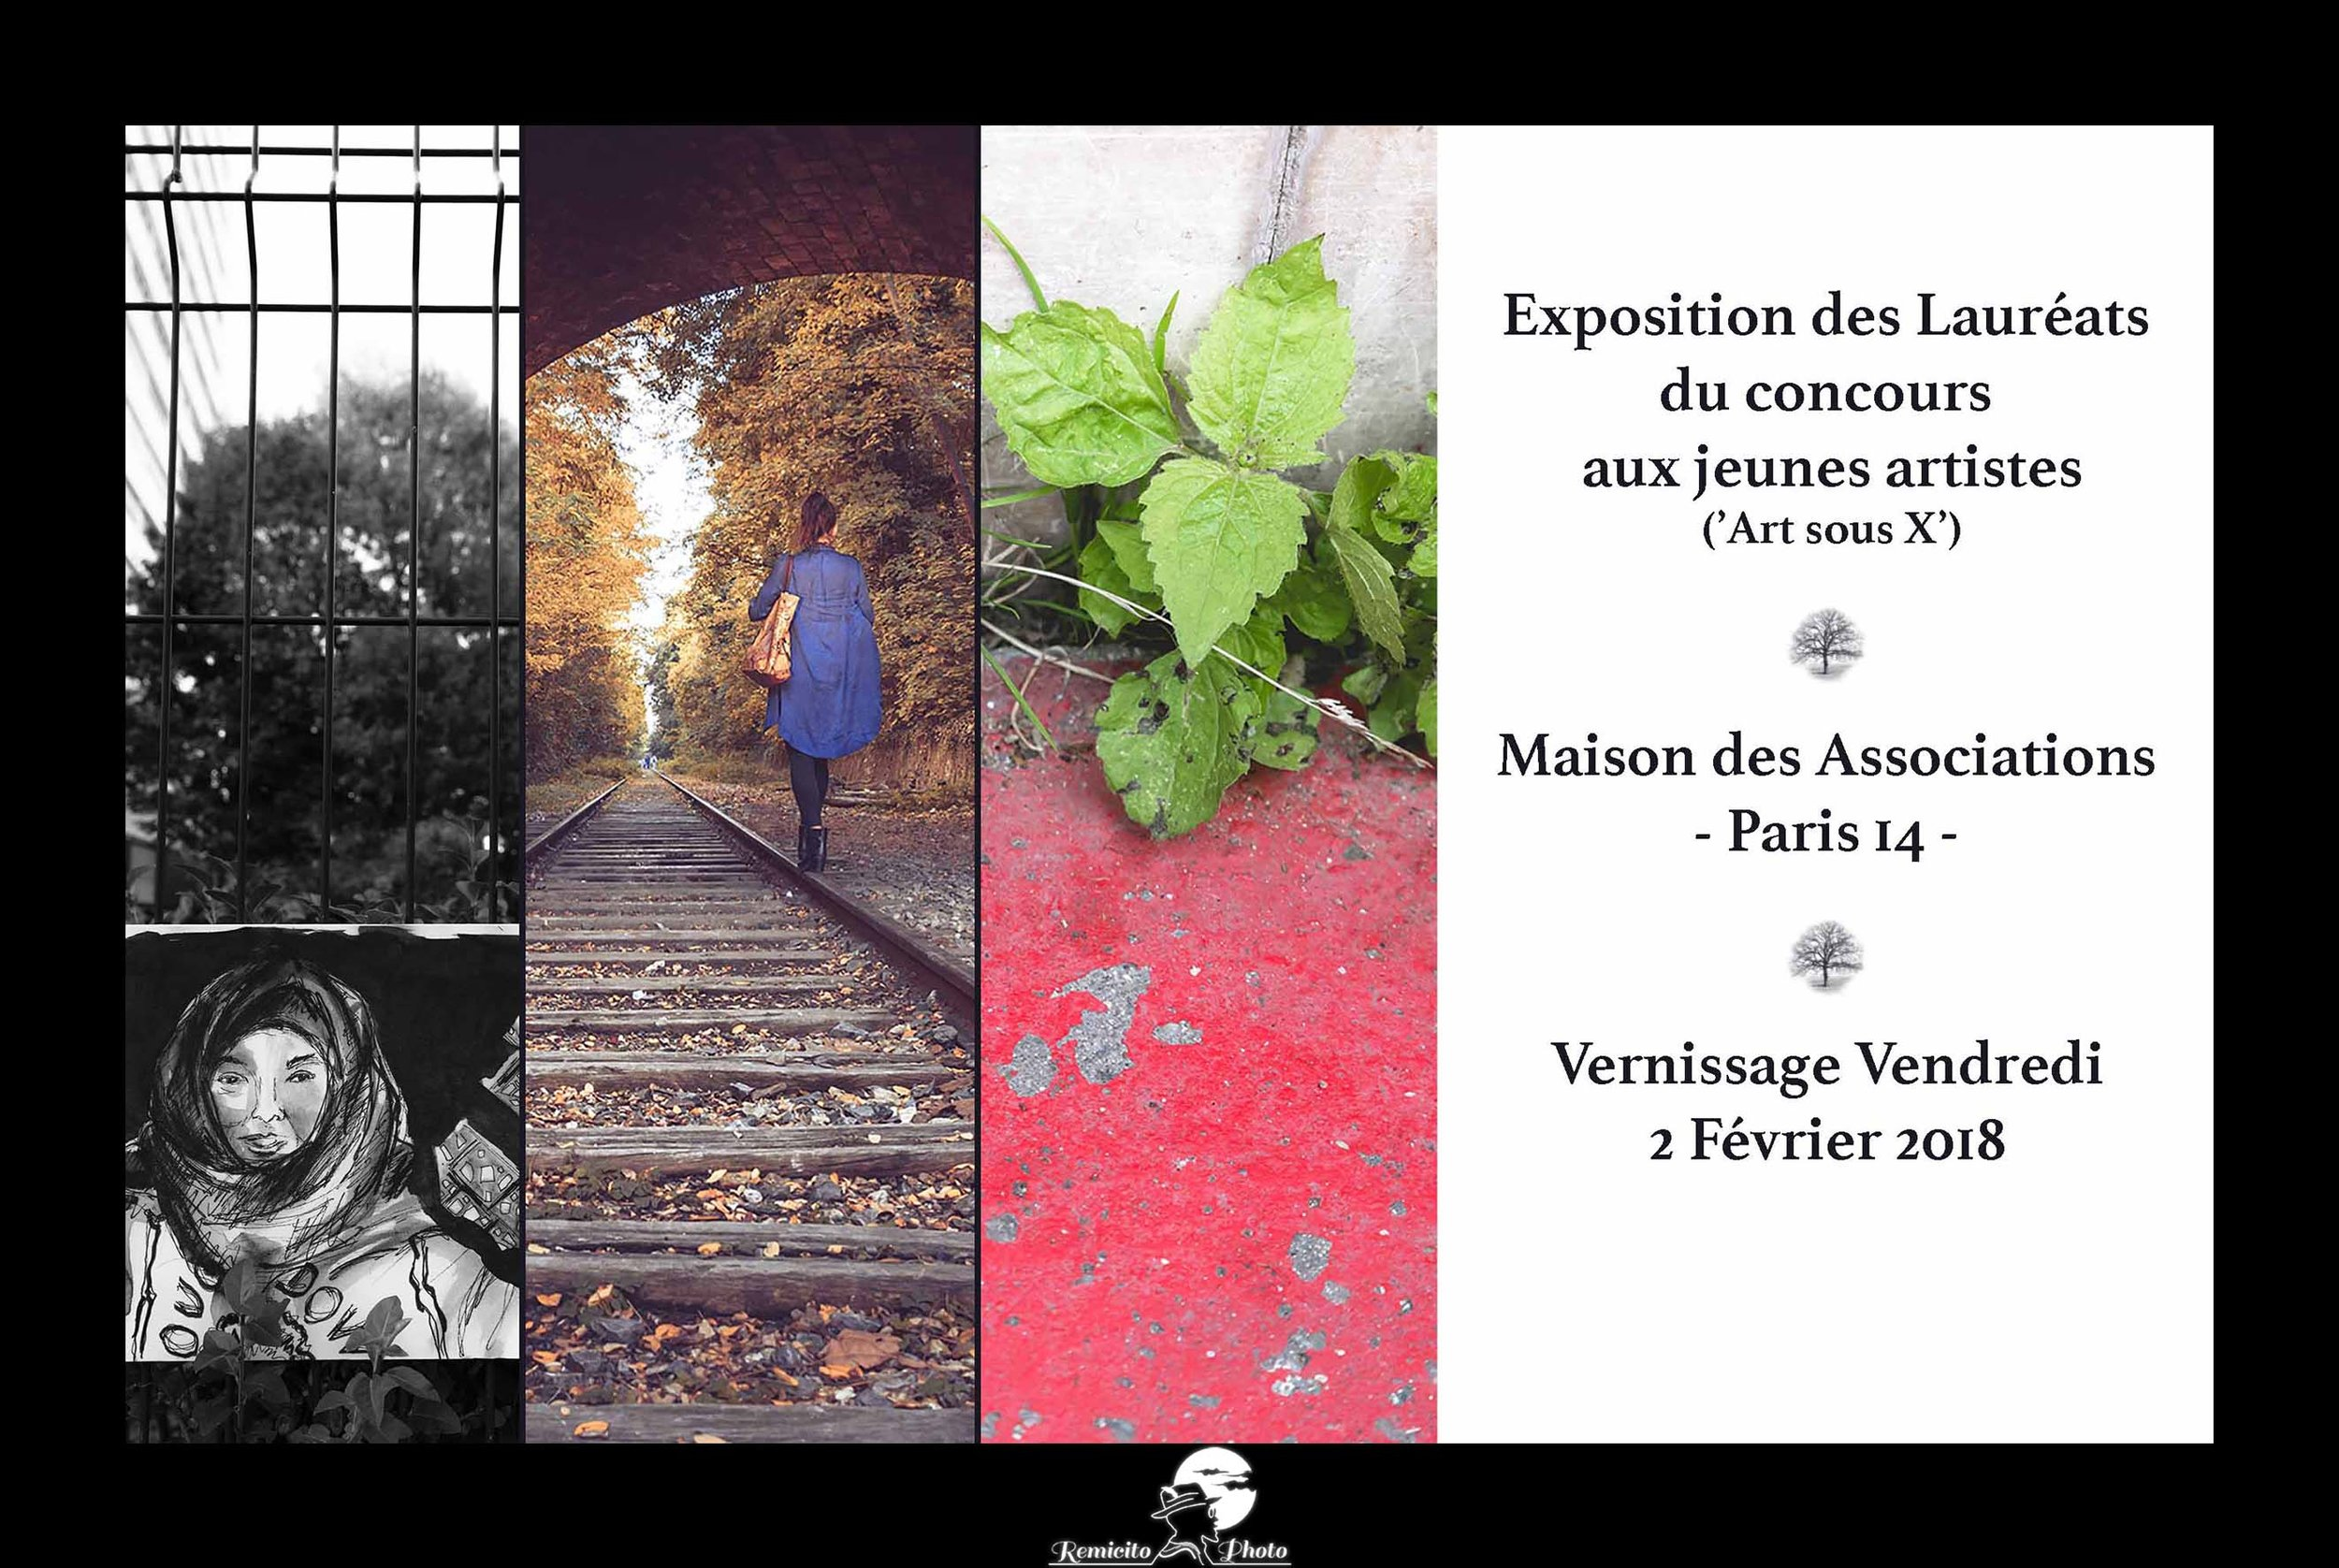 remicito photo, remicito, exposition paris photo, expo collective Paris, expo photo france paris, french photography exhibition, Maison des Associations paris 14 exposition photo, belle photo, idée cadeau